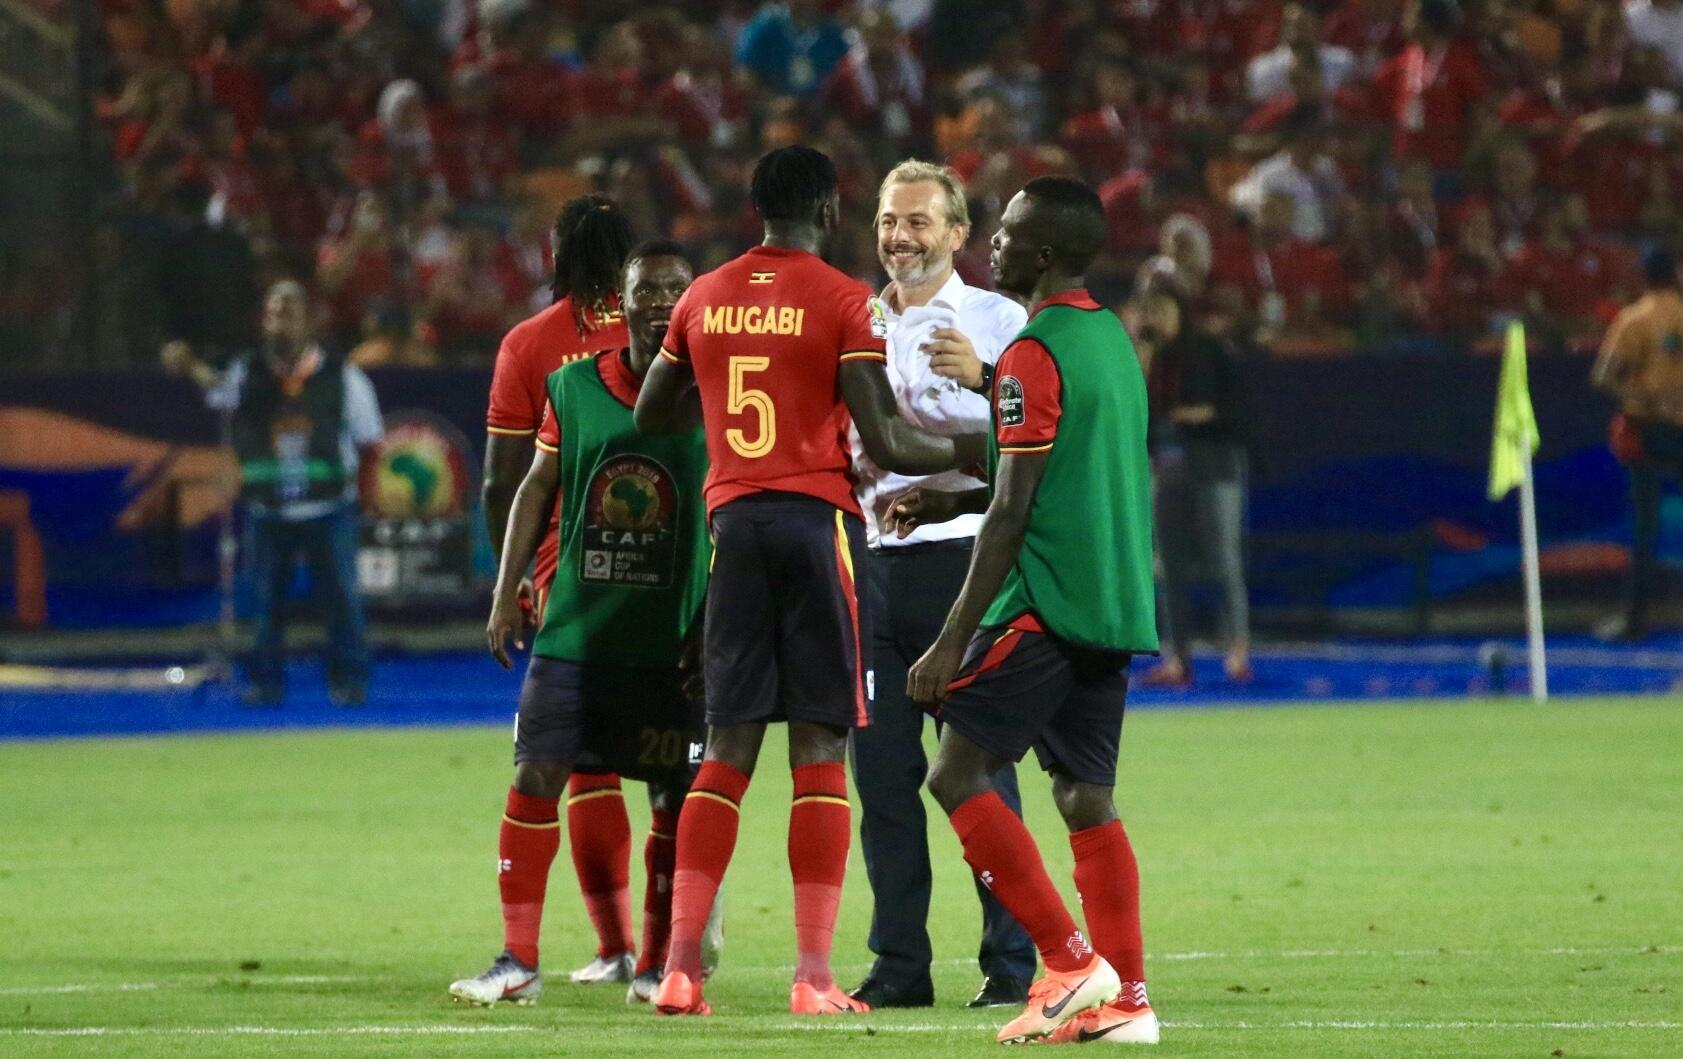 Man with a plan: Sébastien Desabre (white shirt) has steered Uganda to the knockout stages at the Africa Cup of Nations for the first time in 41 years.